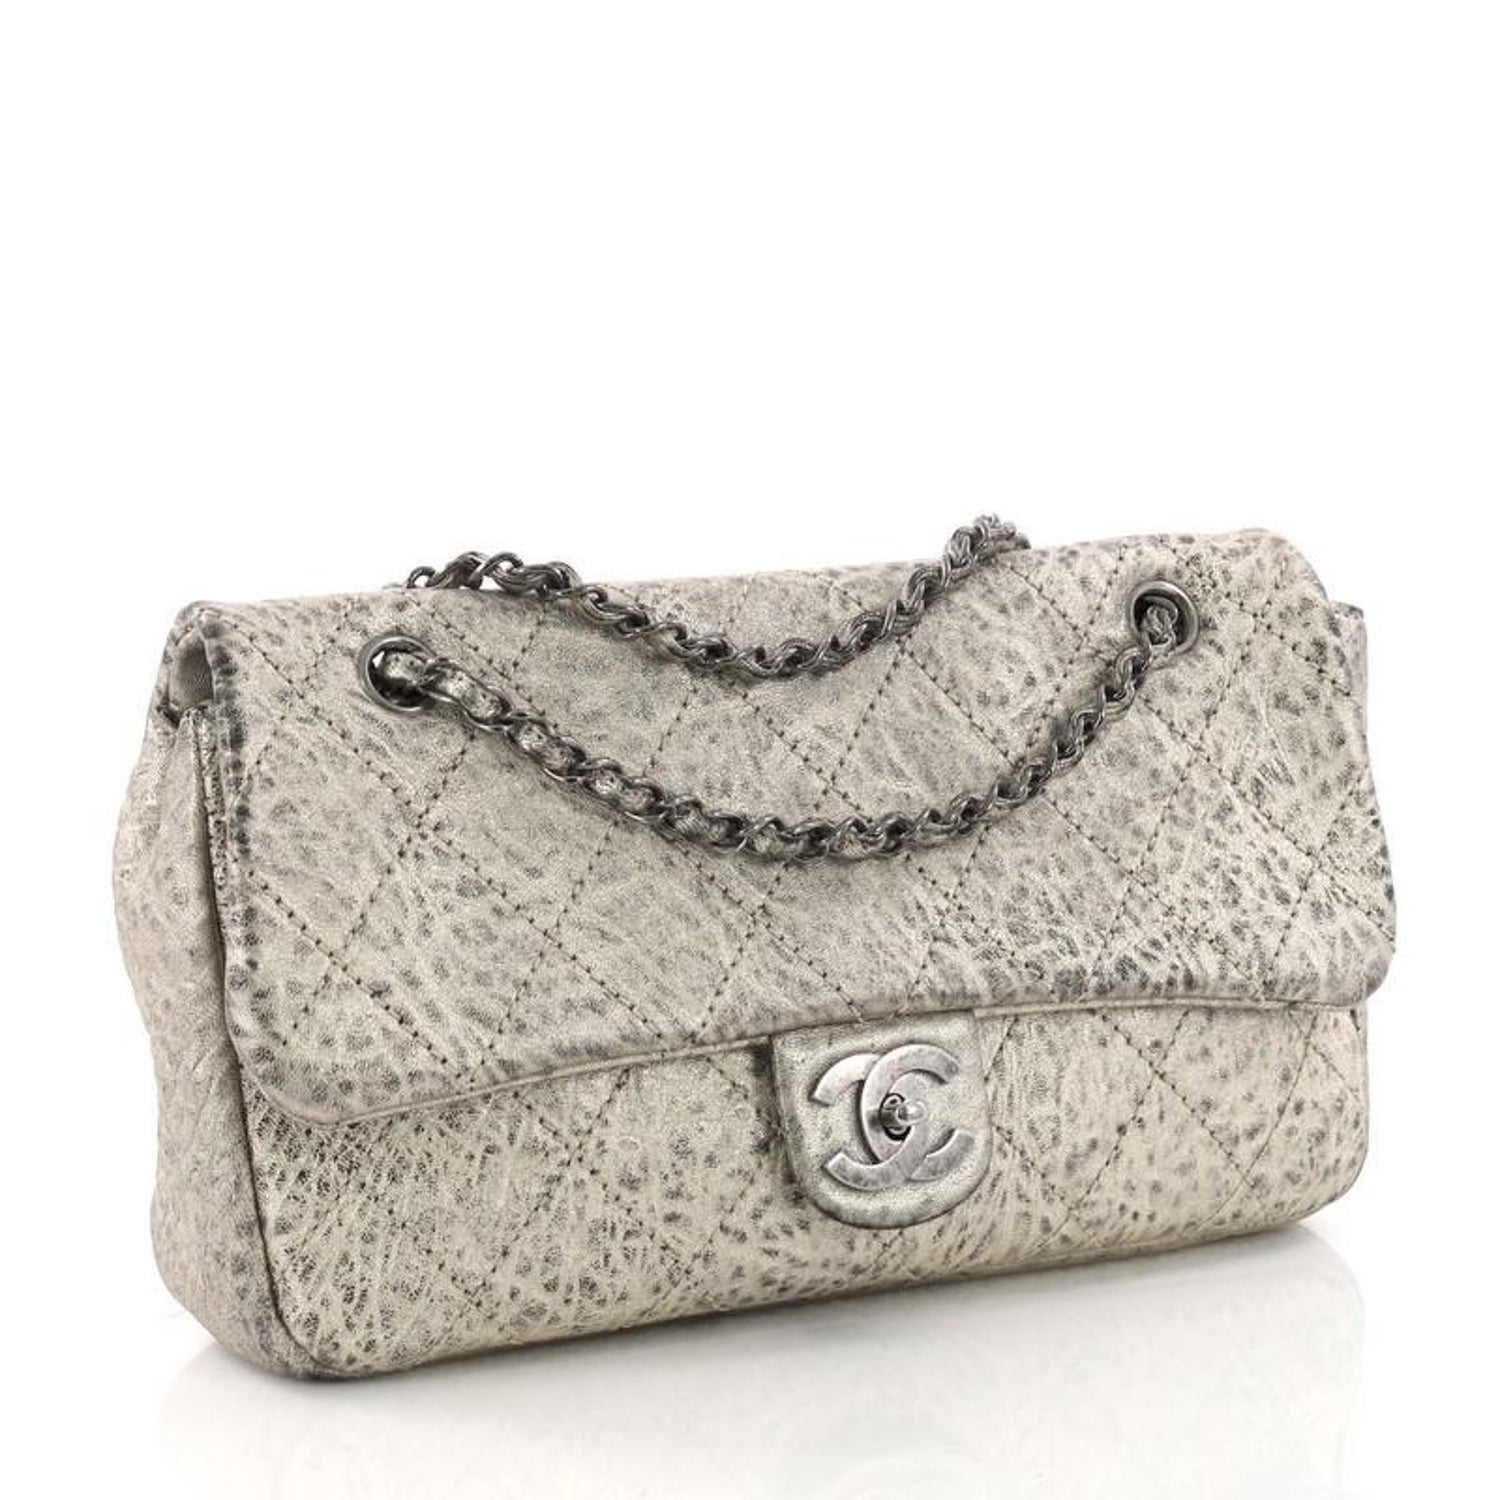 be6a5a55eadafb Chanel Le Marais Classic Flap Bag Quilted Distressed Leather Jumbo at  1stdibs